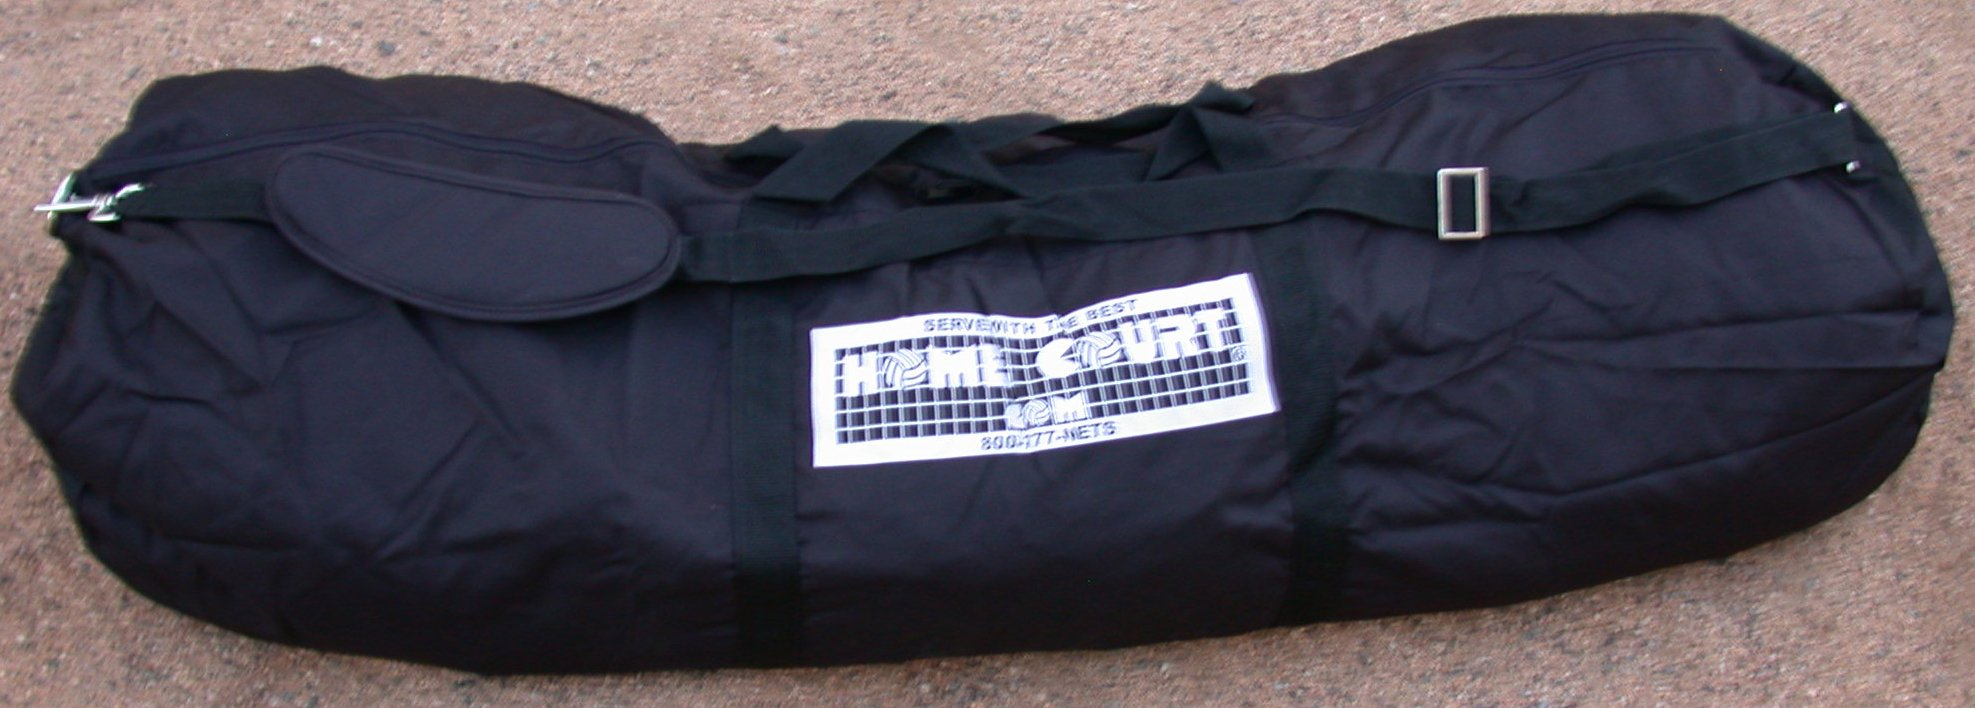 Home Court Volleyball Net and Equipment Carrying Bag - B50